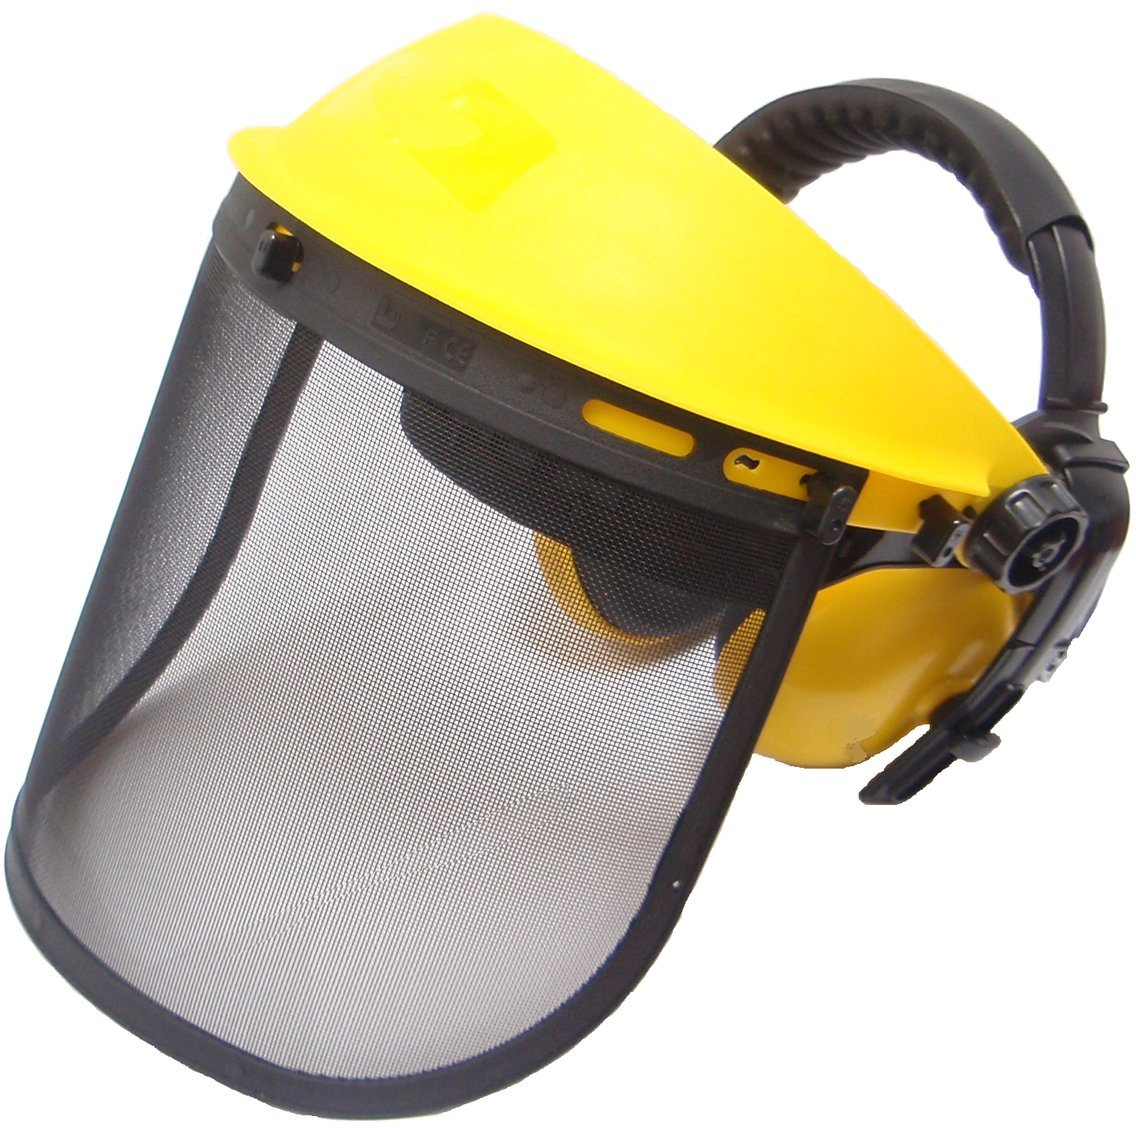 Jasper Browguard Face Shield Mesh Visor with Ear Muffs - ANSI Z87.1 CE EN1731 by Jasper (Image #1)